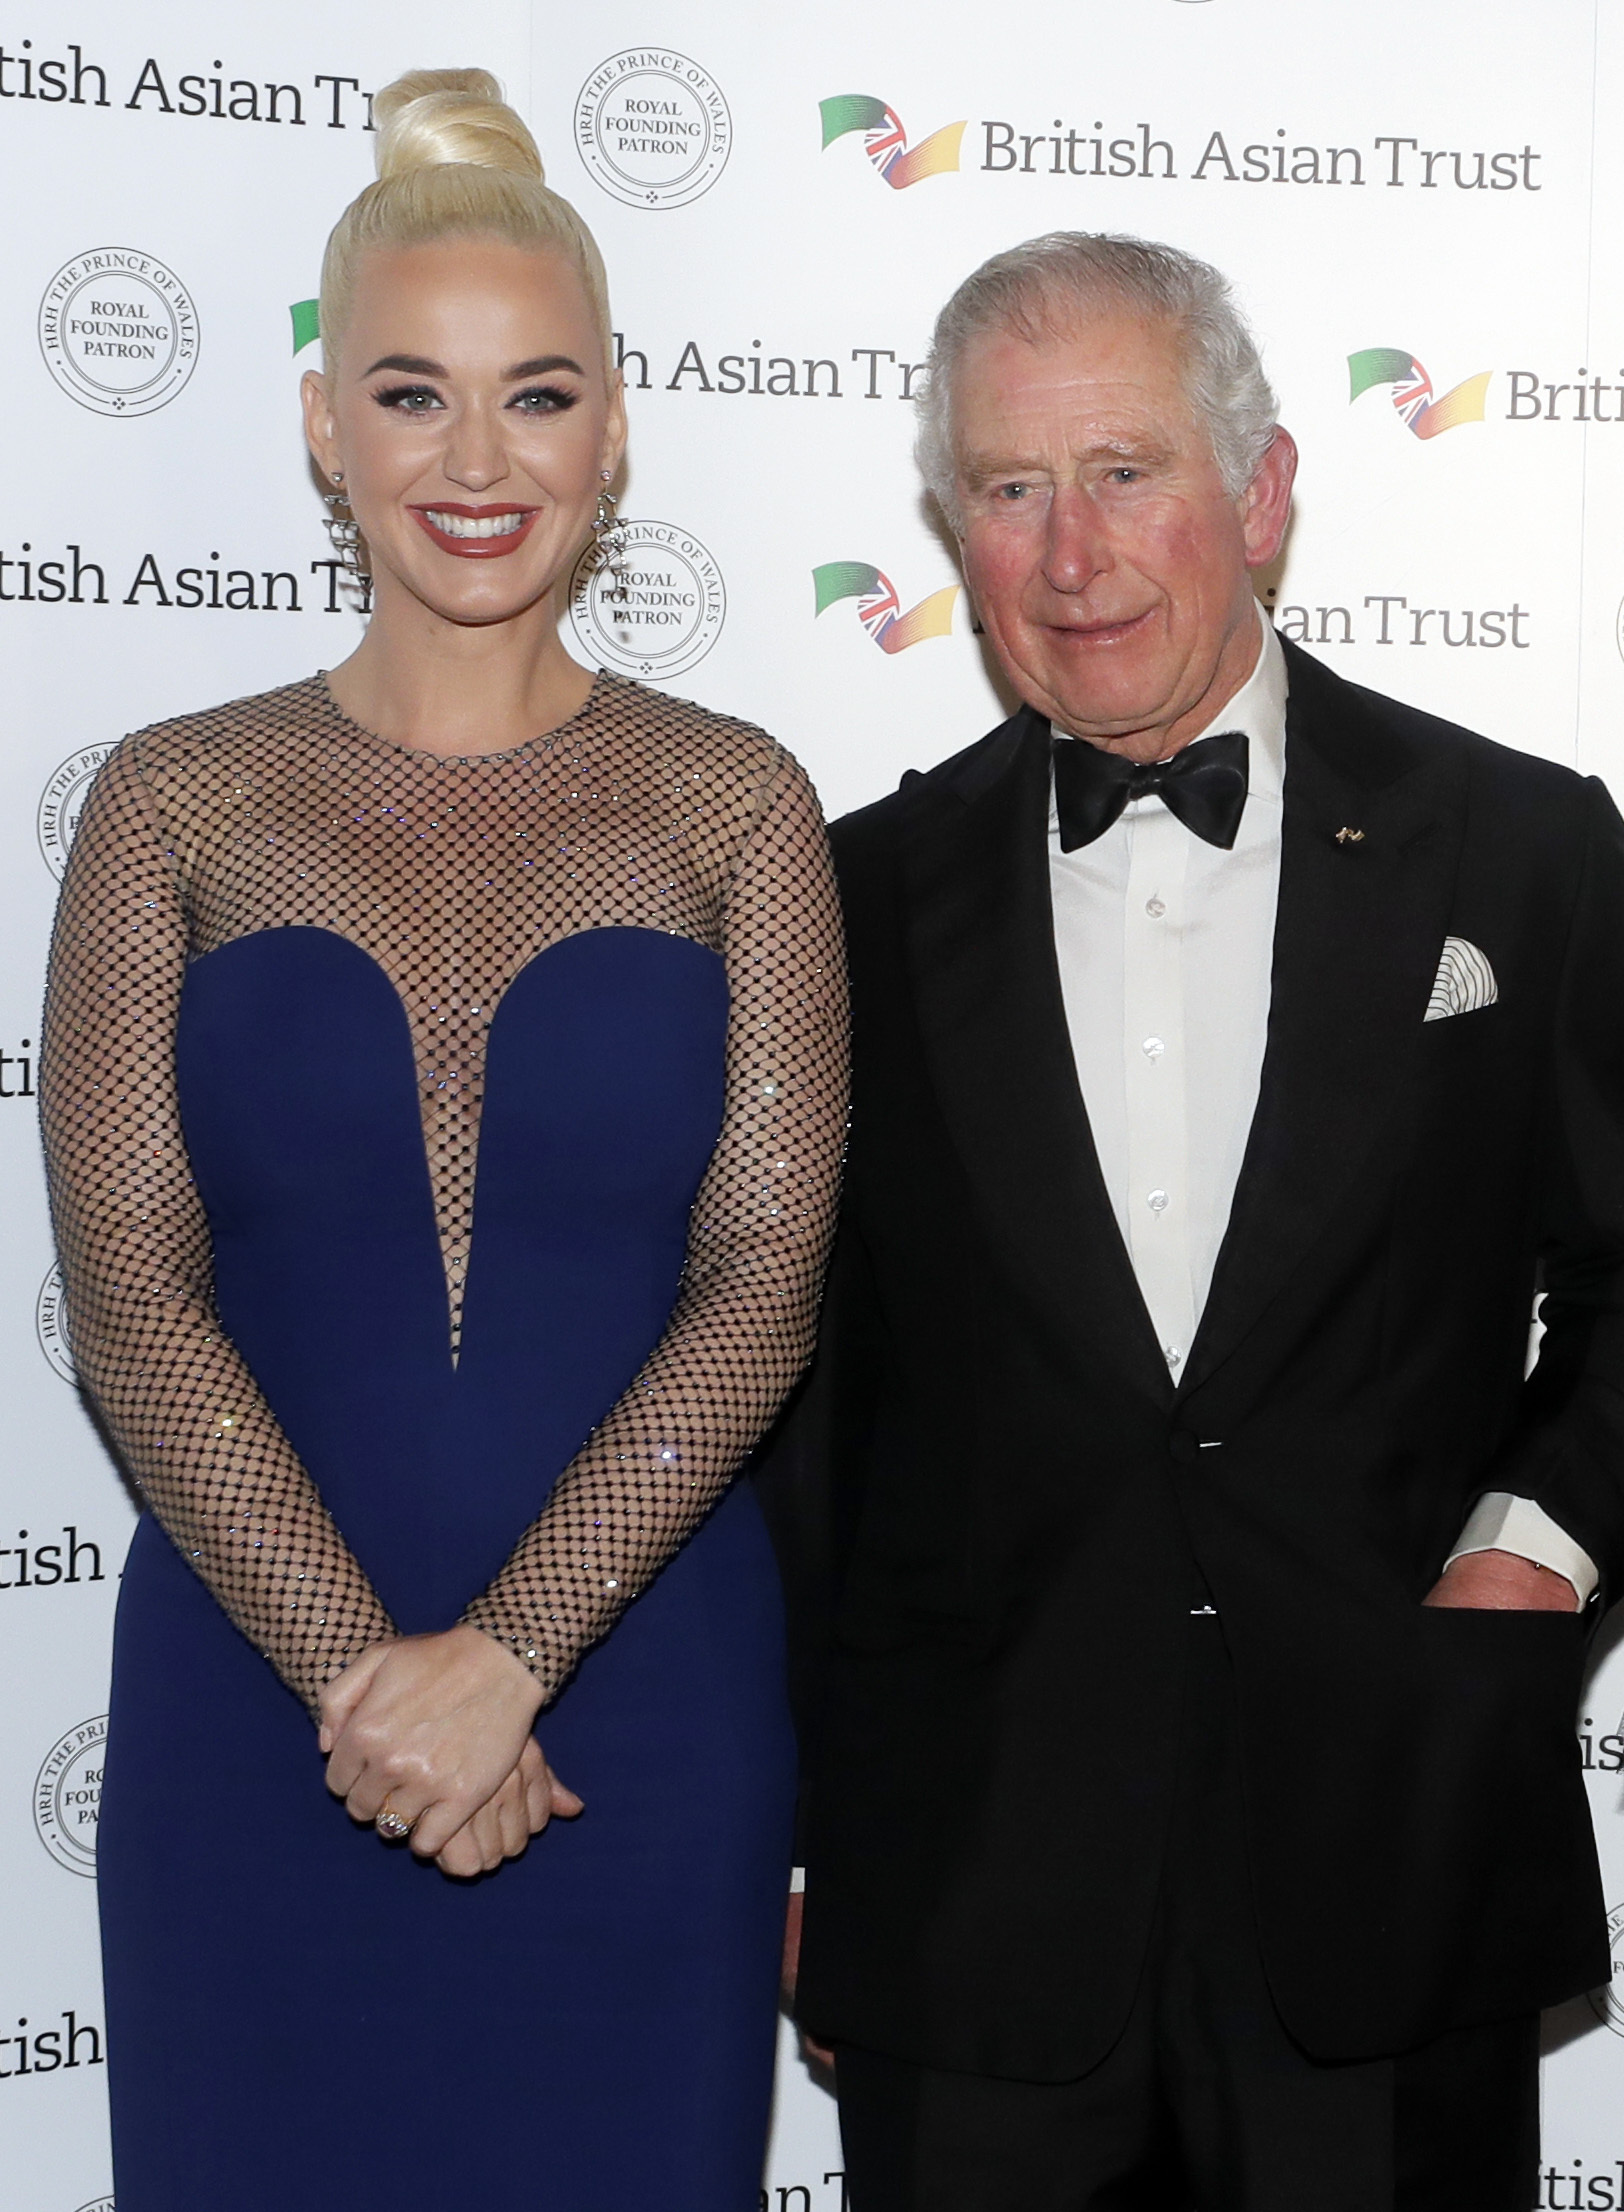 Prince Charles and Katy Perry